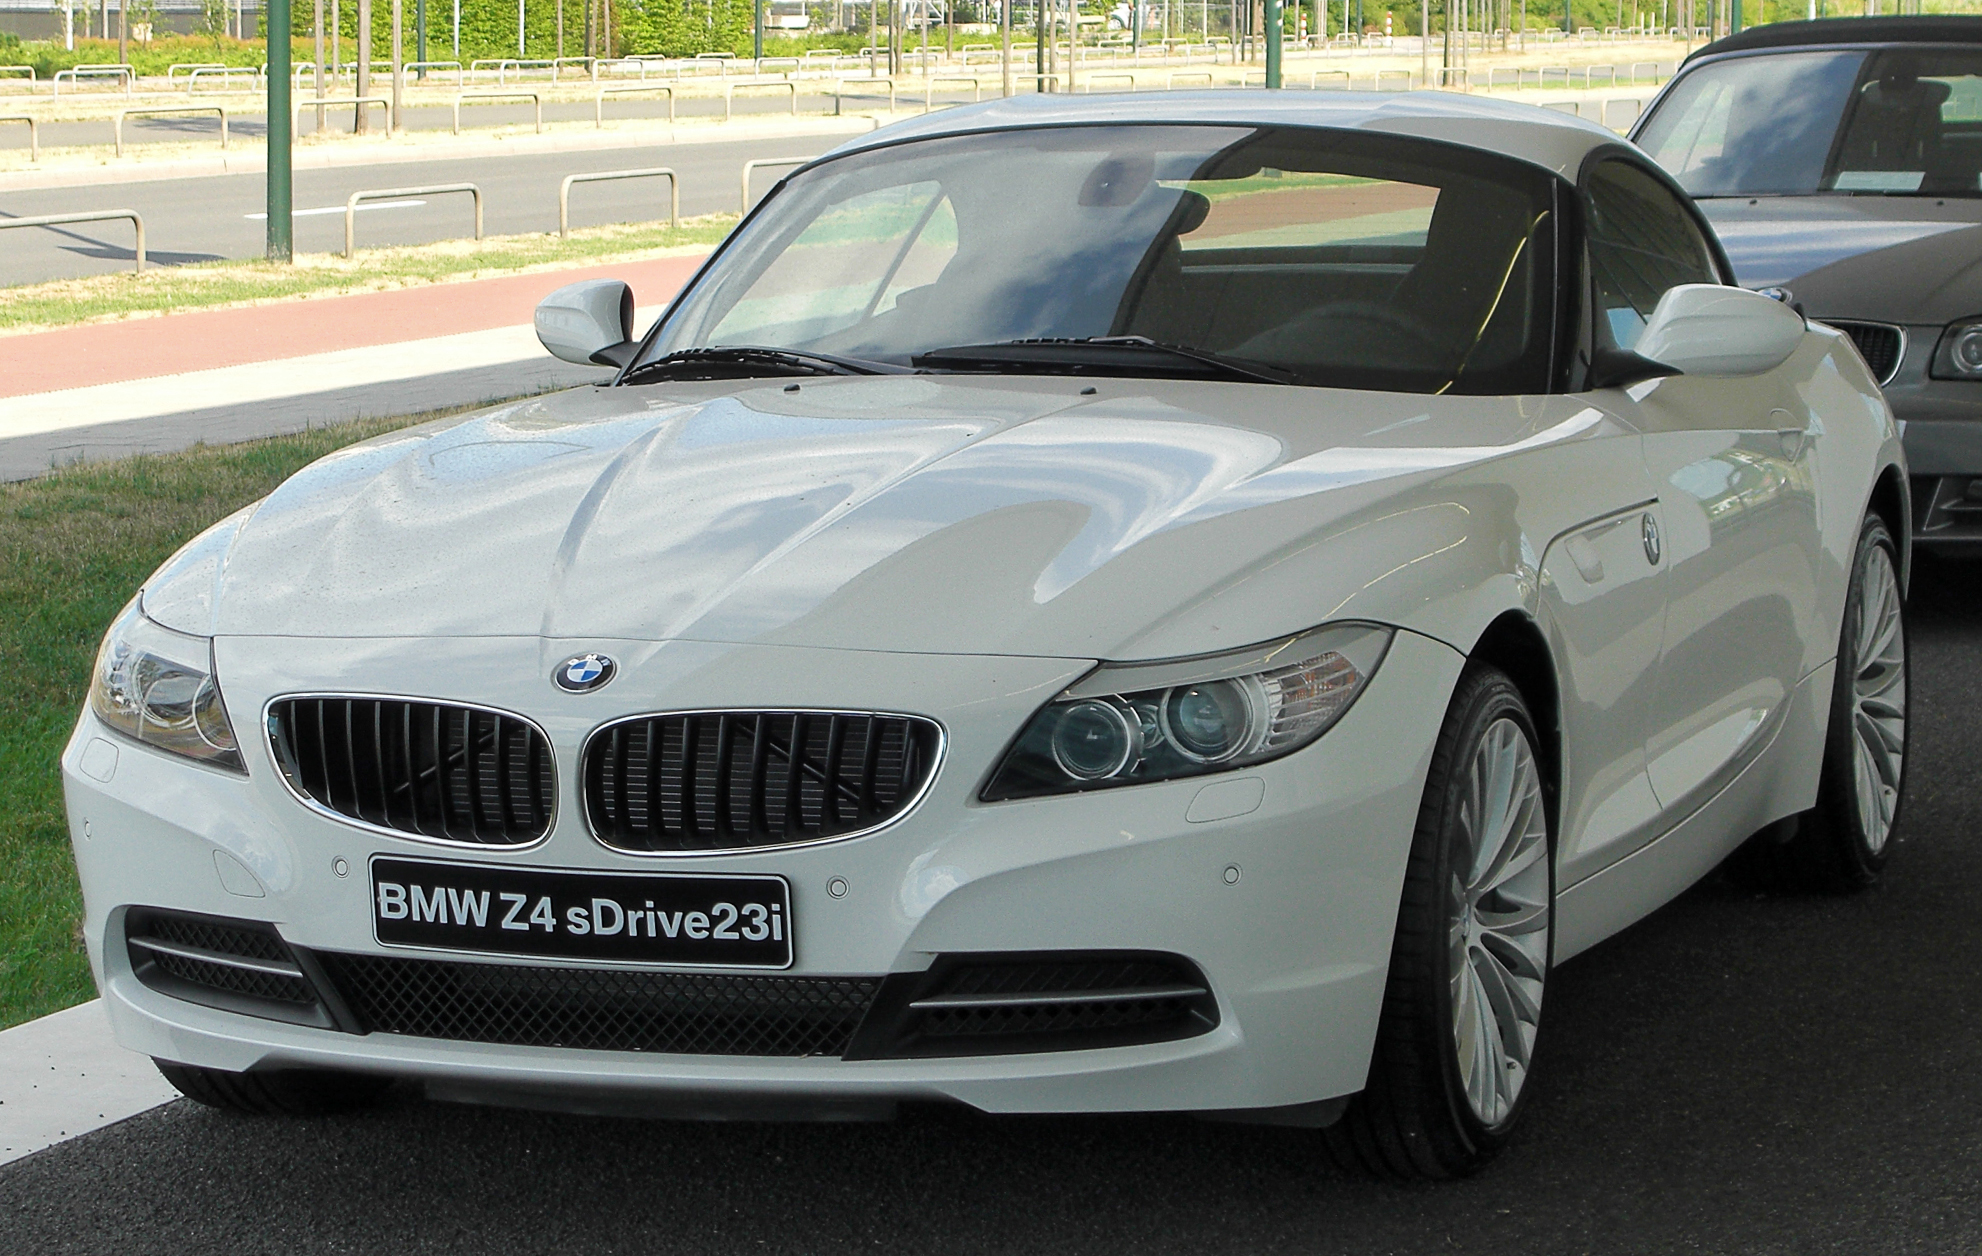 File Bmw Z4 Sdrive23i E89 Front 20100724 Jpg Wikimedia Commons